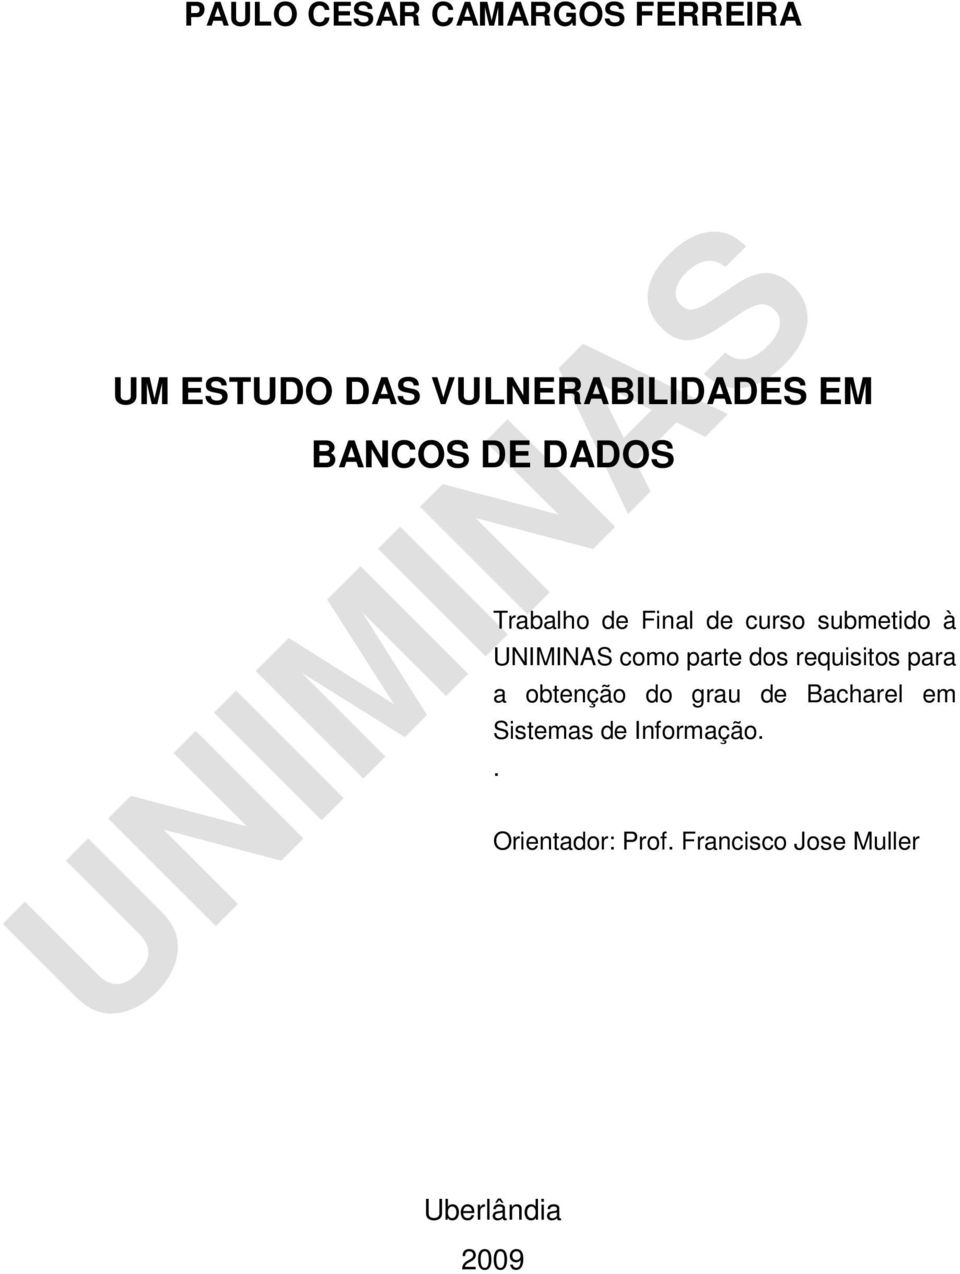 parte ds requisits para a btençã d grau de Bacharel em